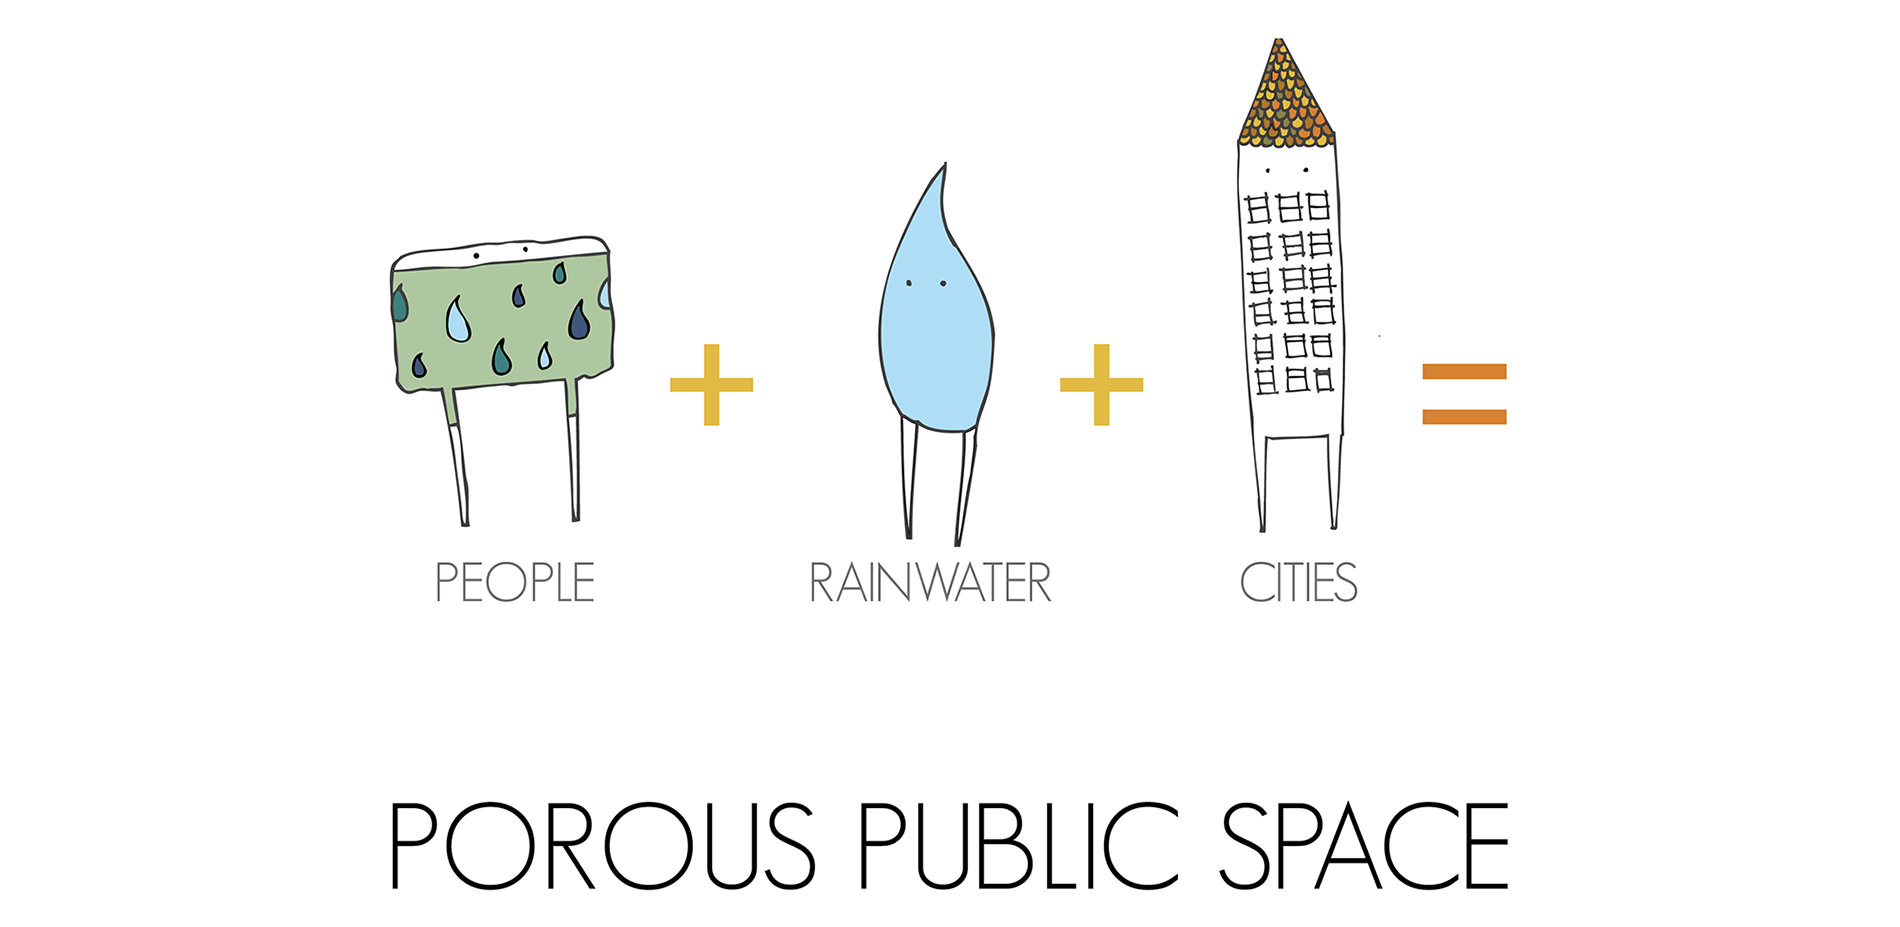 Porous Public Space People Rainwater Cities